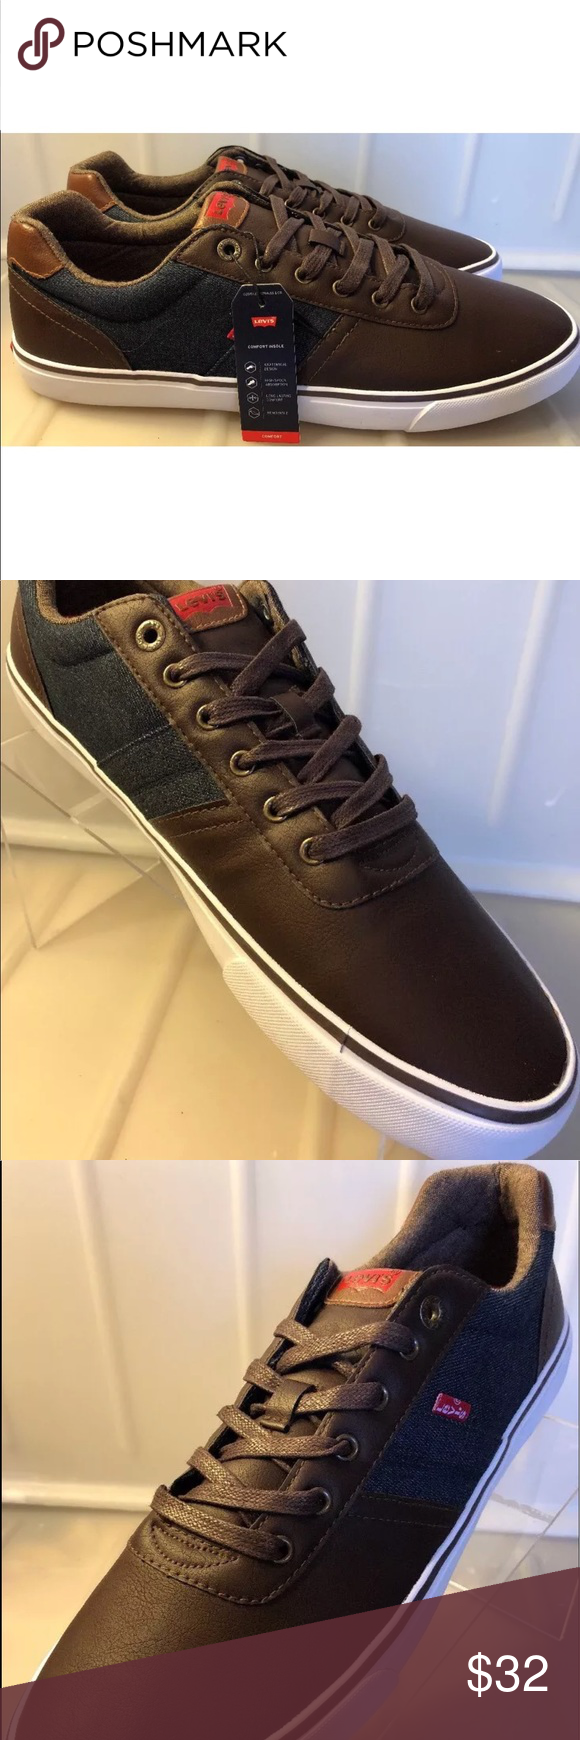 Levi's Turner nappa Men's size 13 casual shoes NEW LEVI'S TURNER NAPPA  MEN'S Size 13 CASUAL e4656352c845